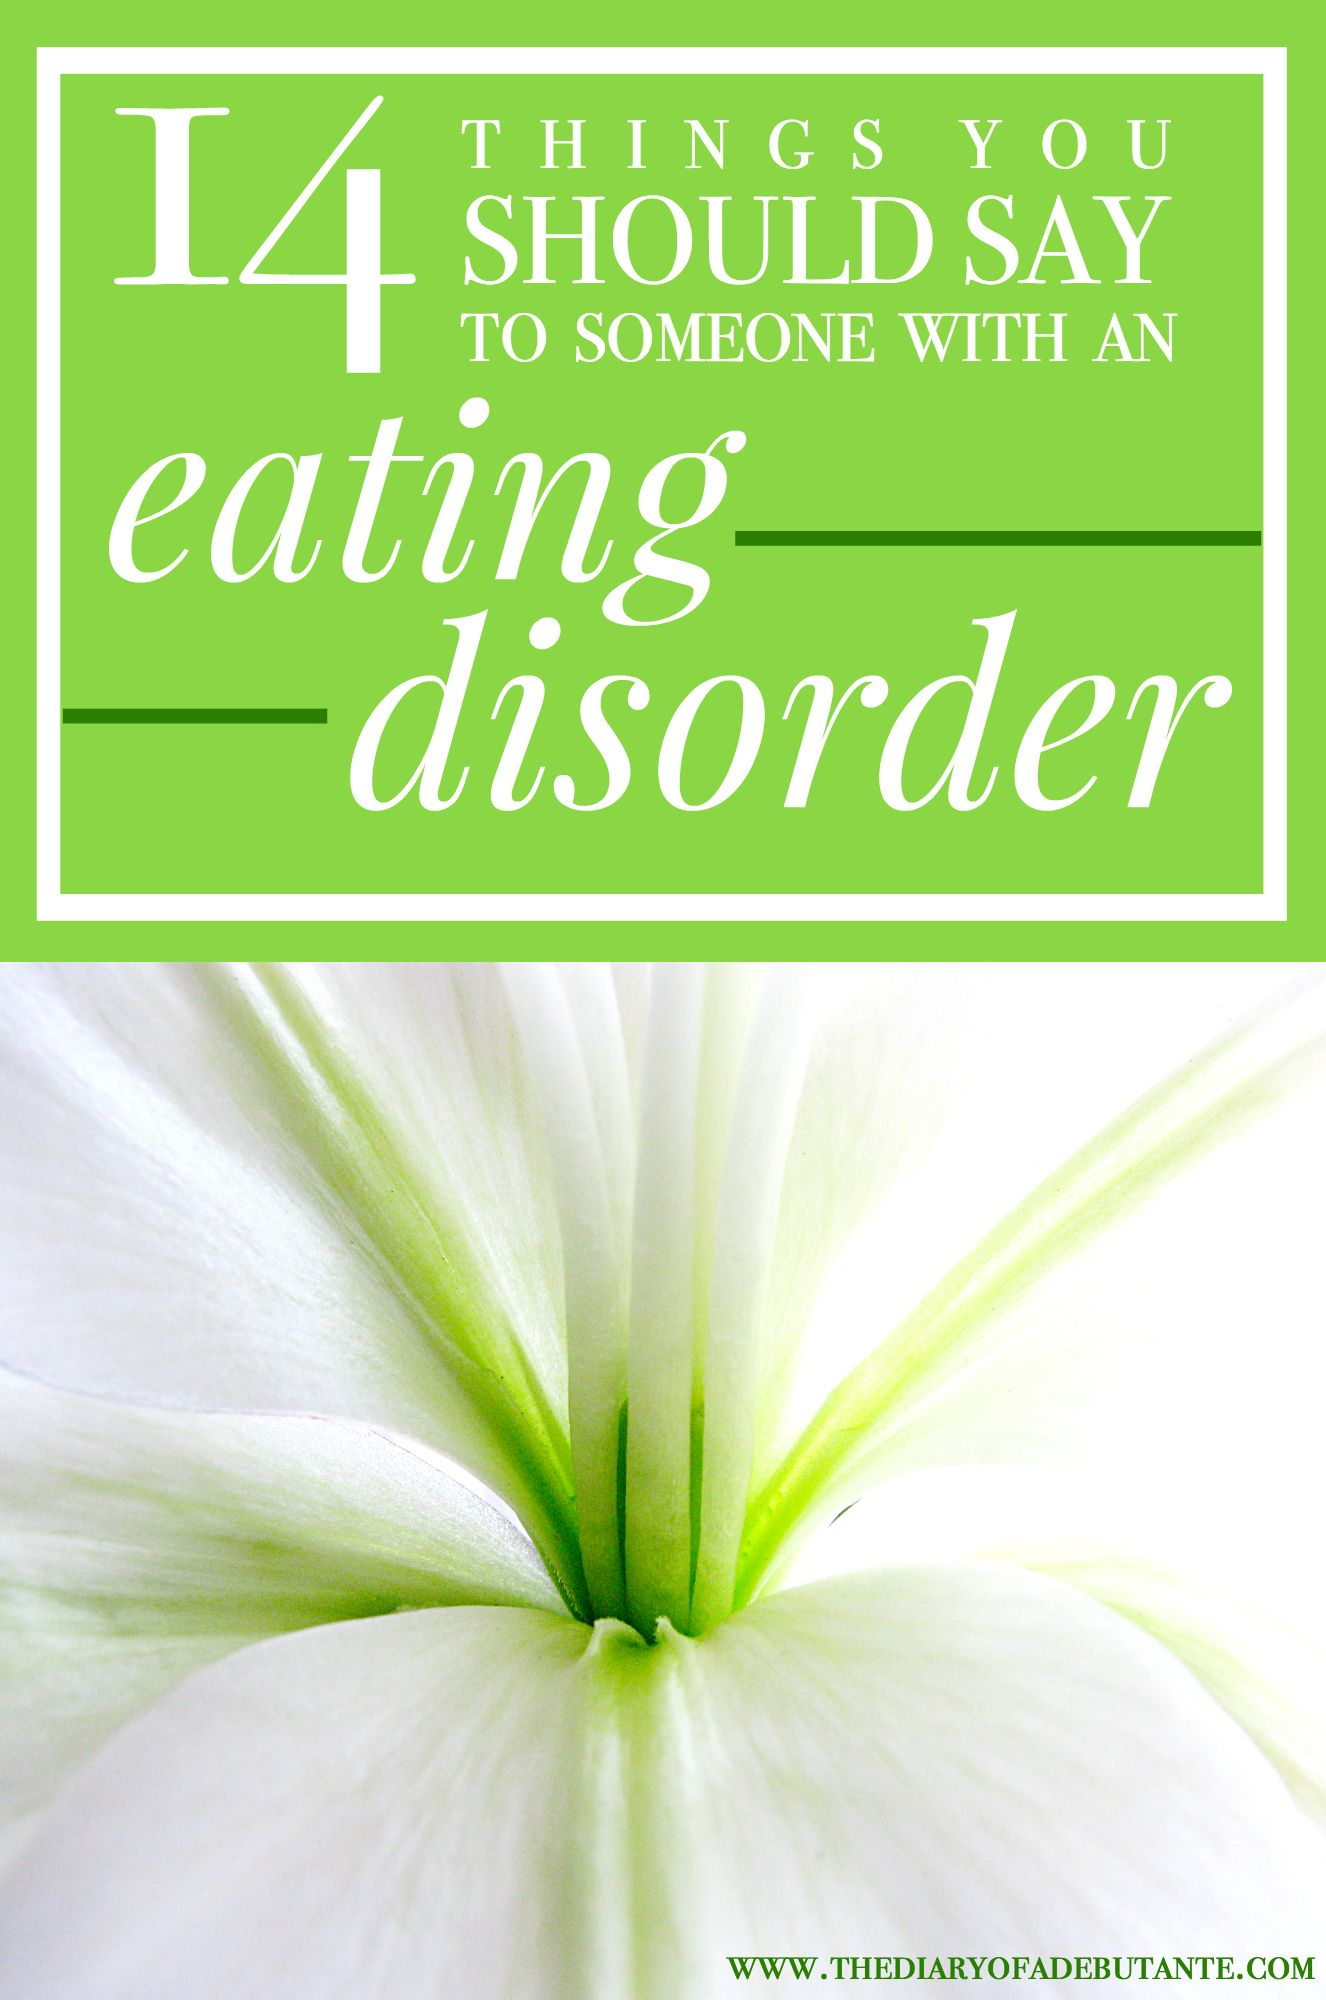 how to help someone with an eating disorder: the things you should